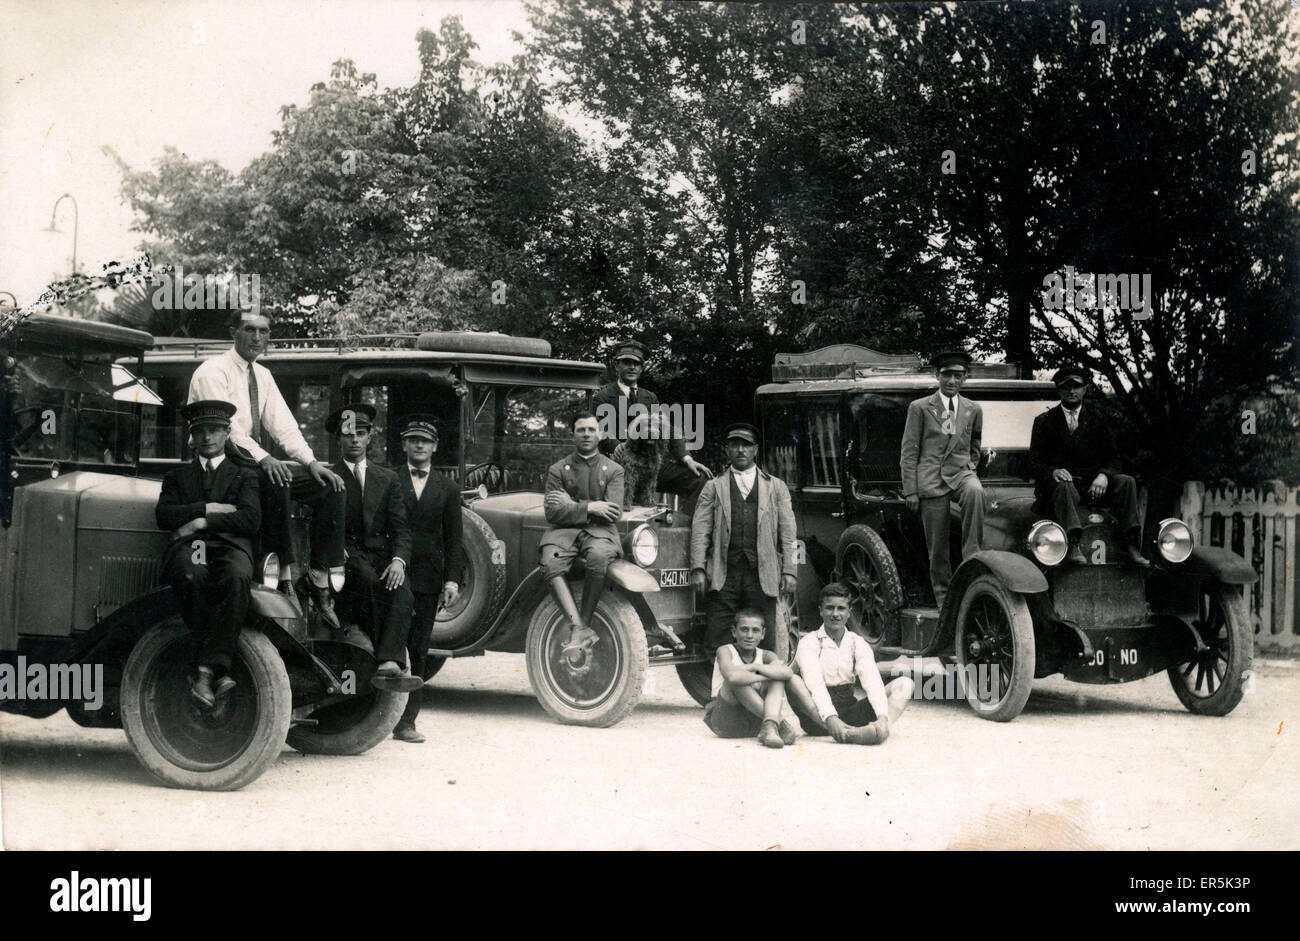 Vintage Landaulet Taxis/Cars 2 x Fiat and an OM Officine Meccaniche , Thought to be in Italy.  1920s - Stock Image